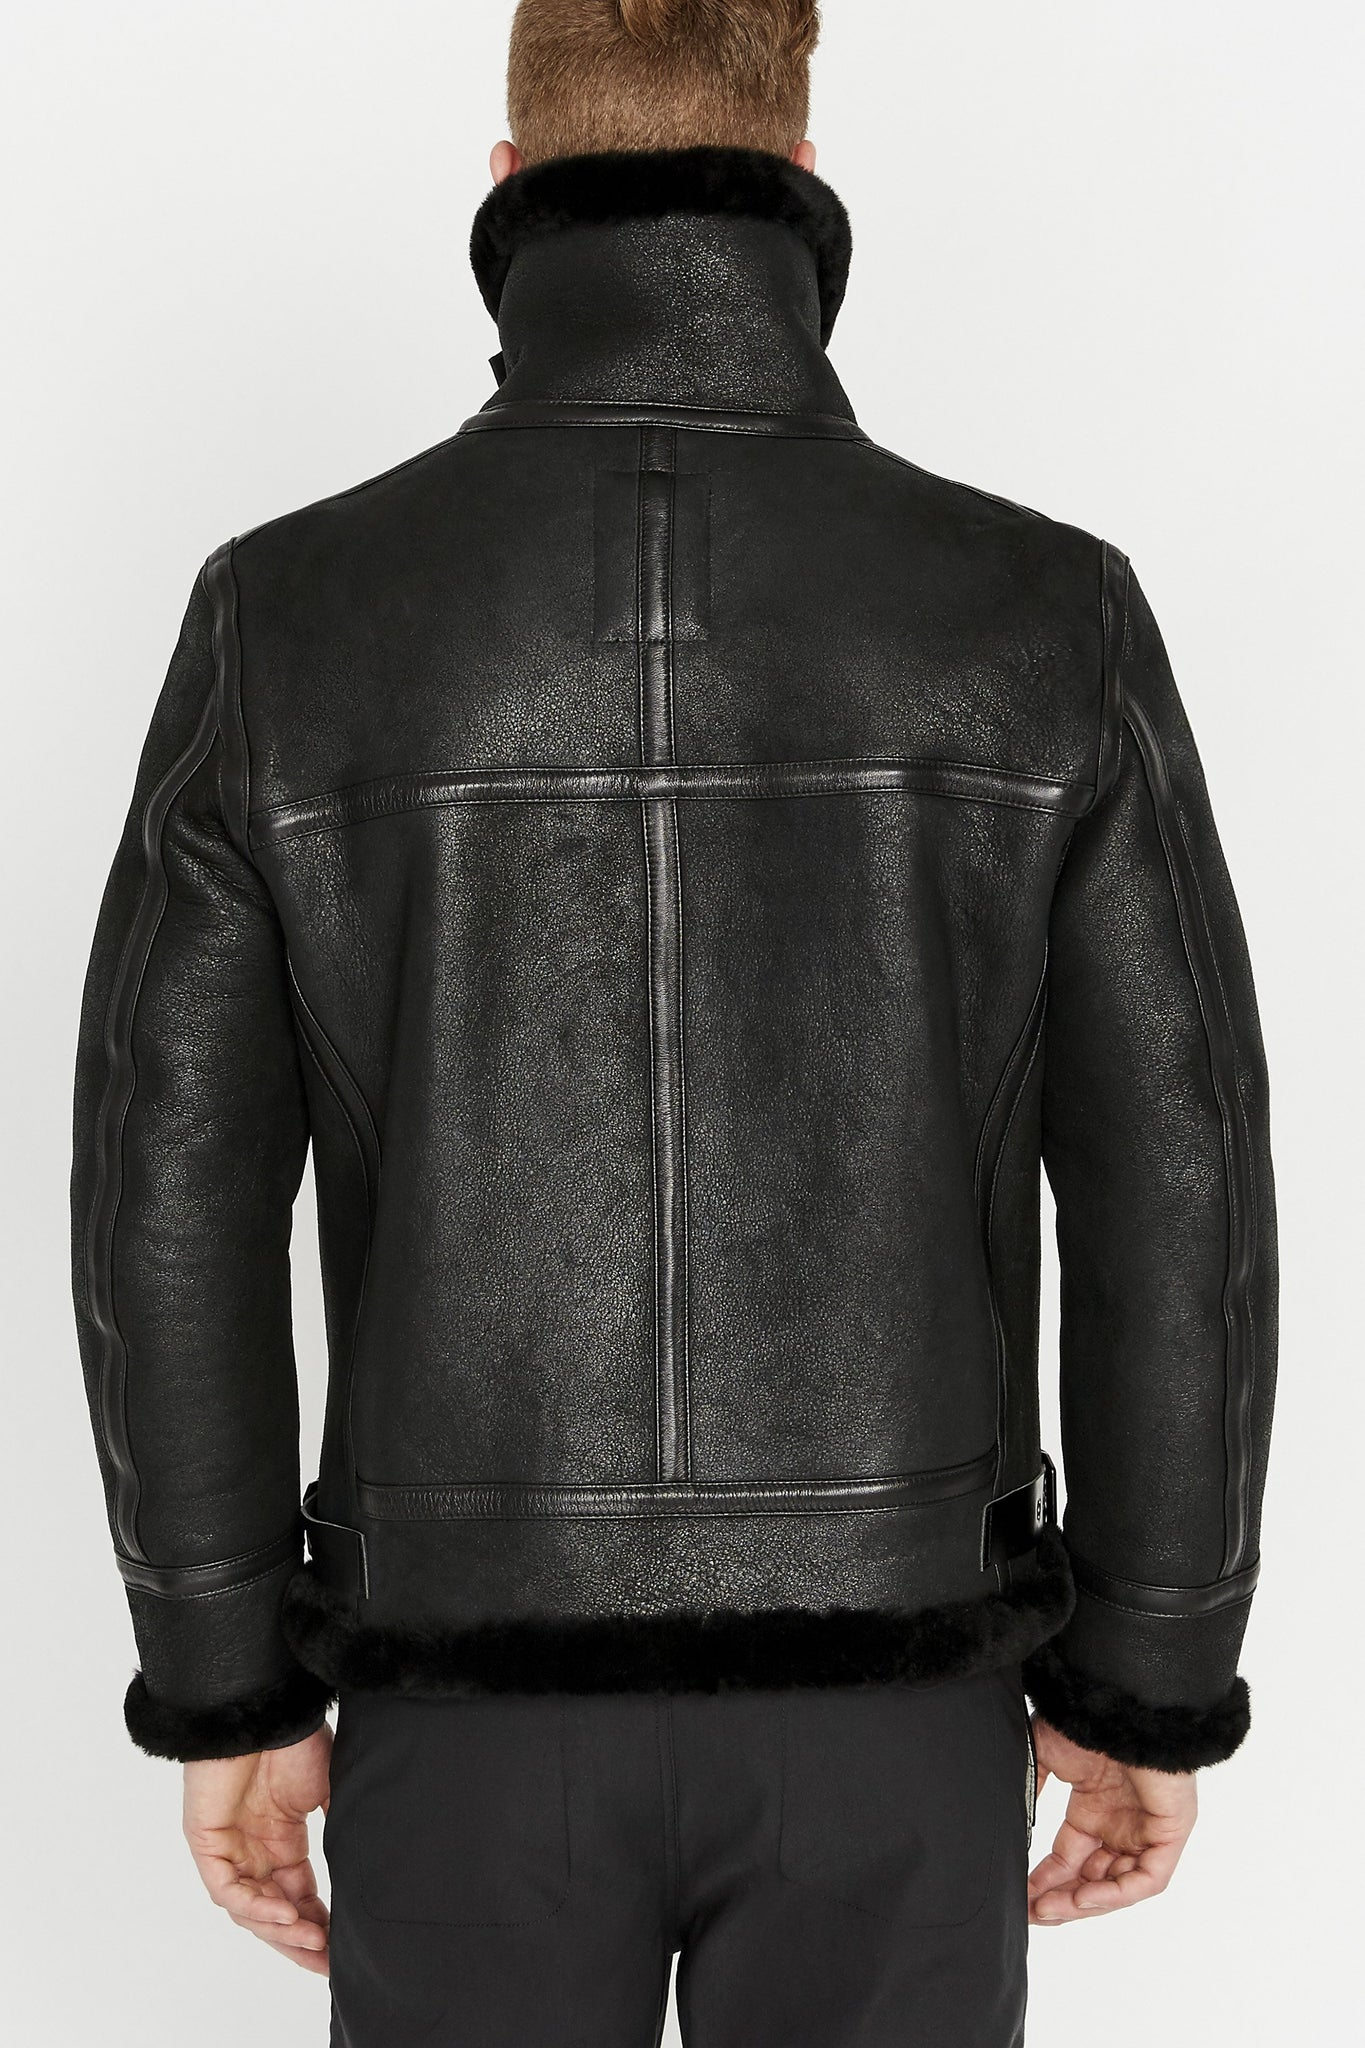 Back view of men wearing black sheepskin jacket with shearling fur lined collar sleeves and waist